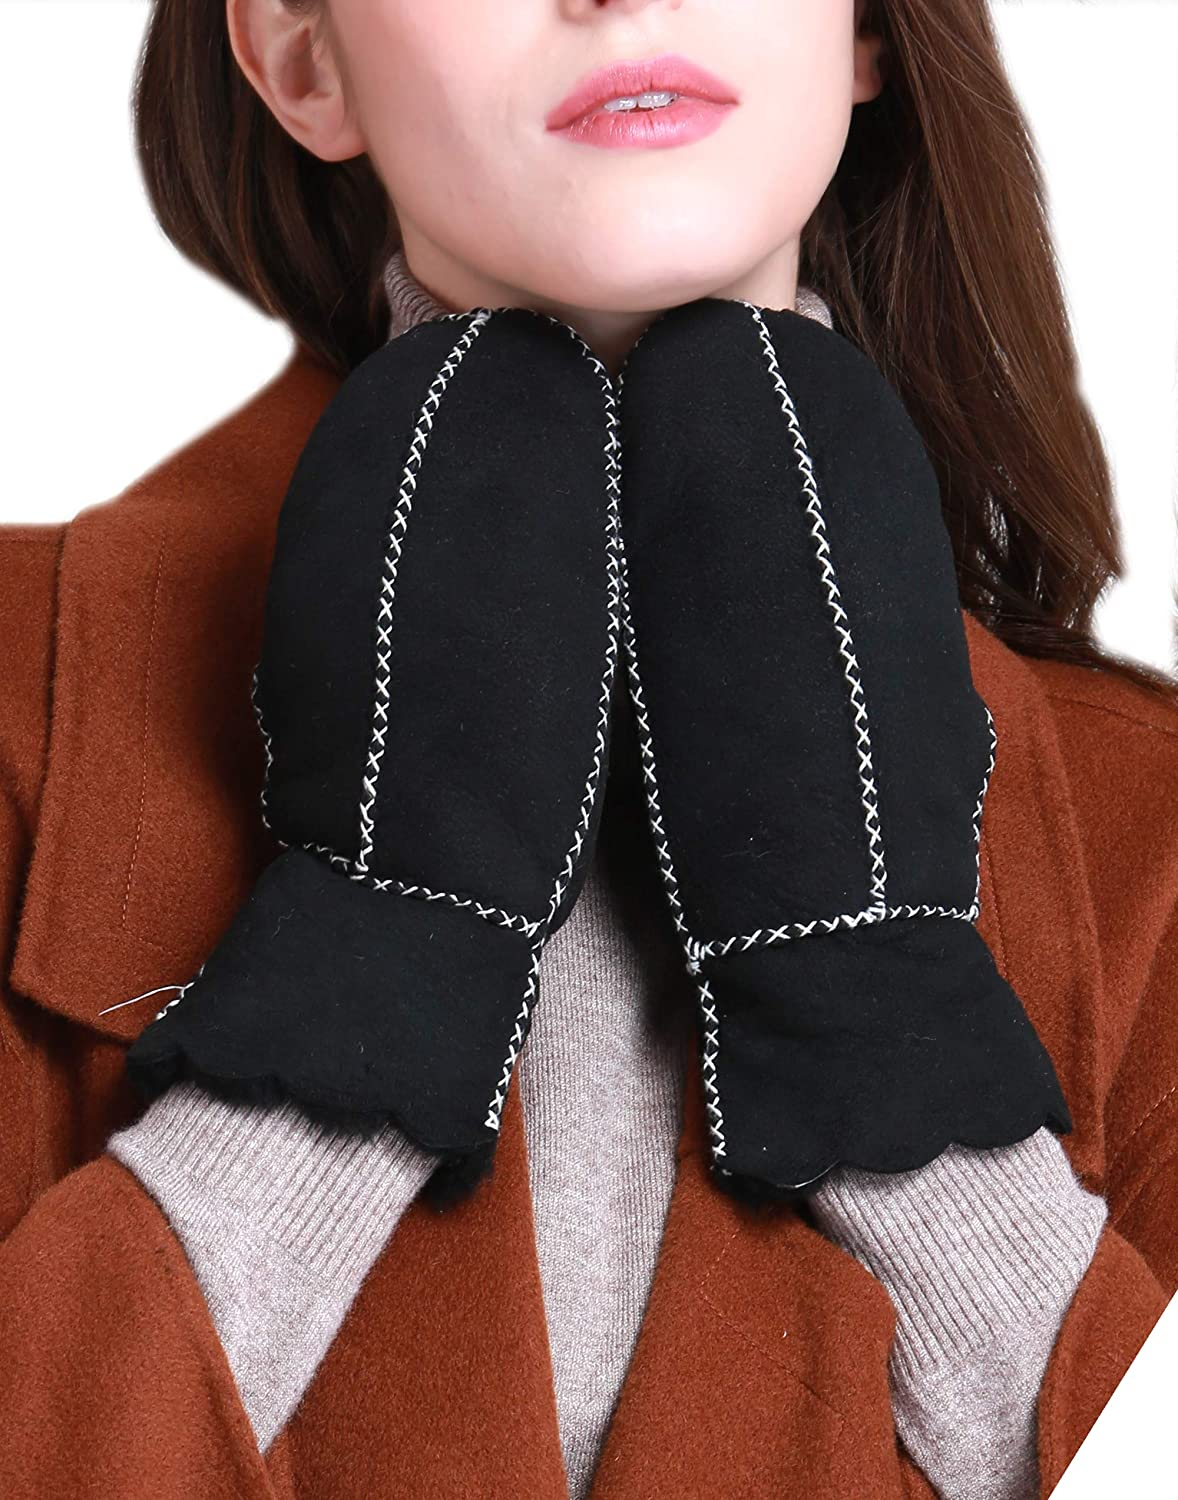 YISEVEN Women's Winter Merino Lambskin Shearling Leather Mitten Wool Lined